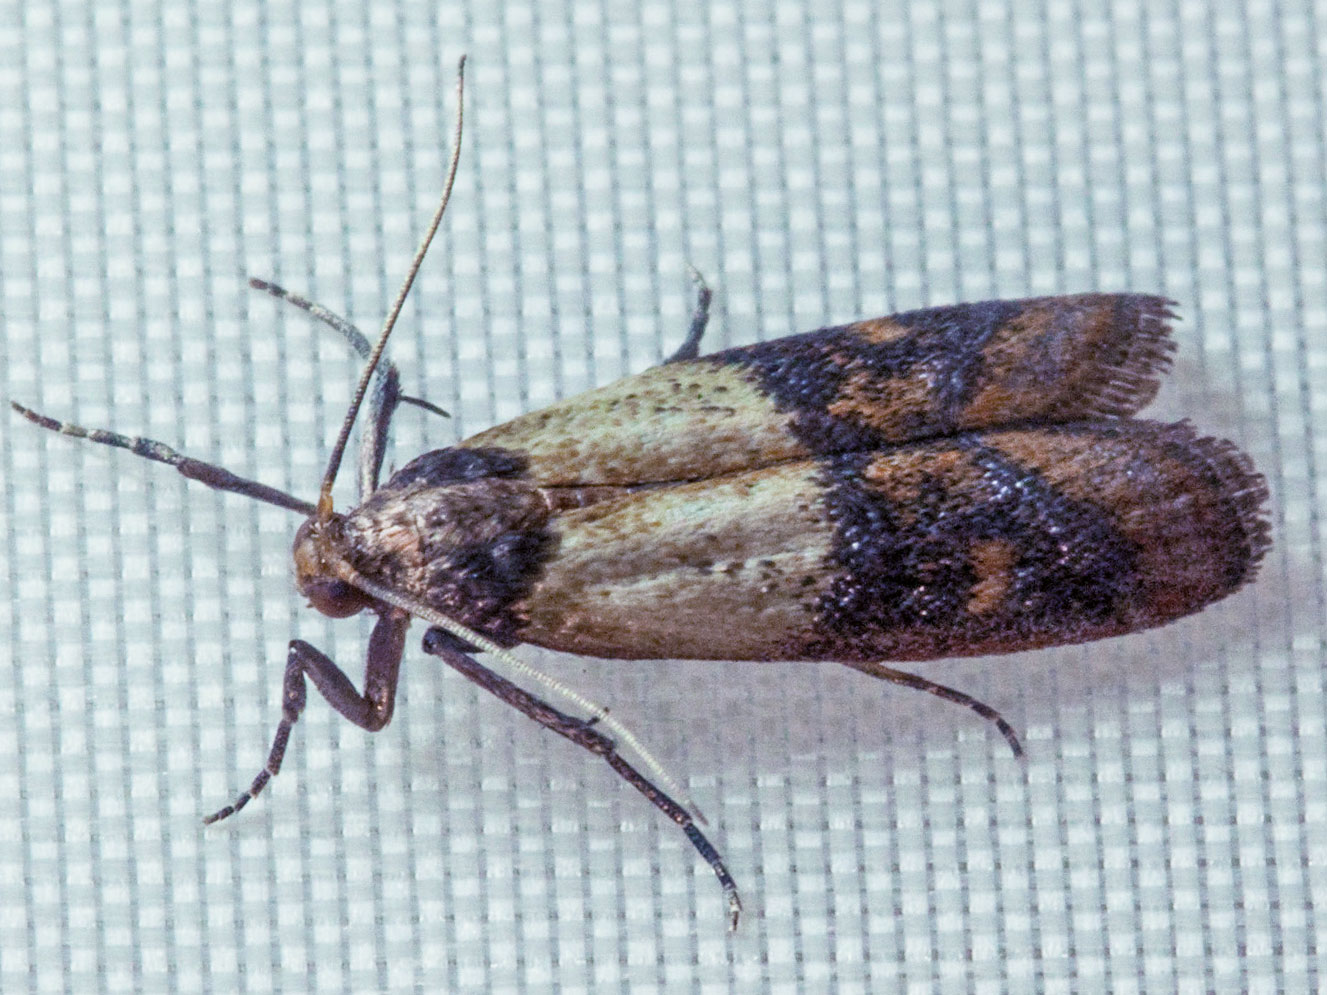 Indian meal moth a pantry pest pest control of bed for Pantry moths